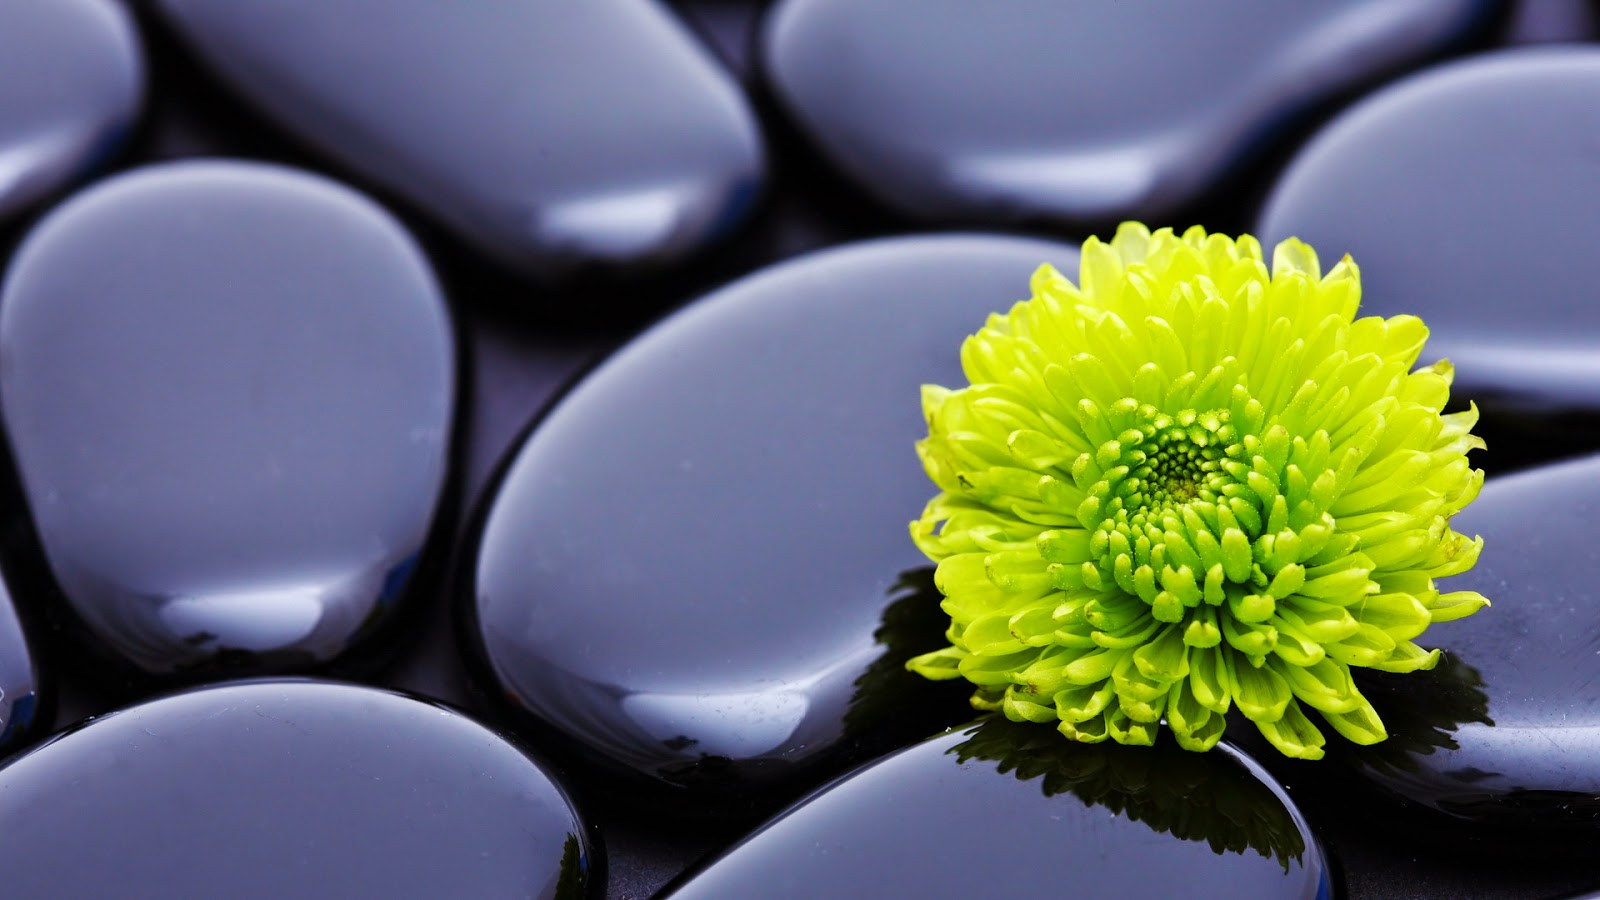 Chinese zen meditation pictures 1080p full hd widescreen wallpapers 1920x1080 zen flower on black stones pictureg voltagebd Images